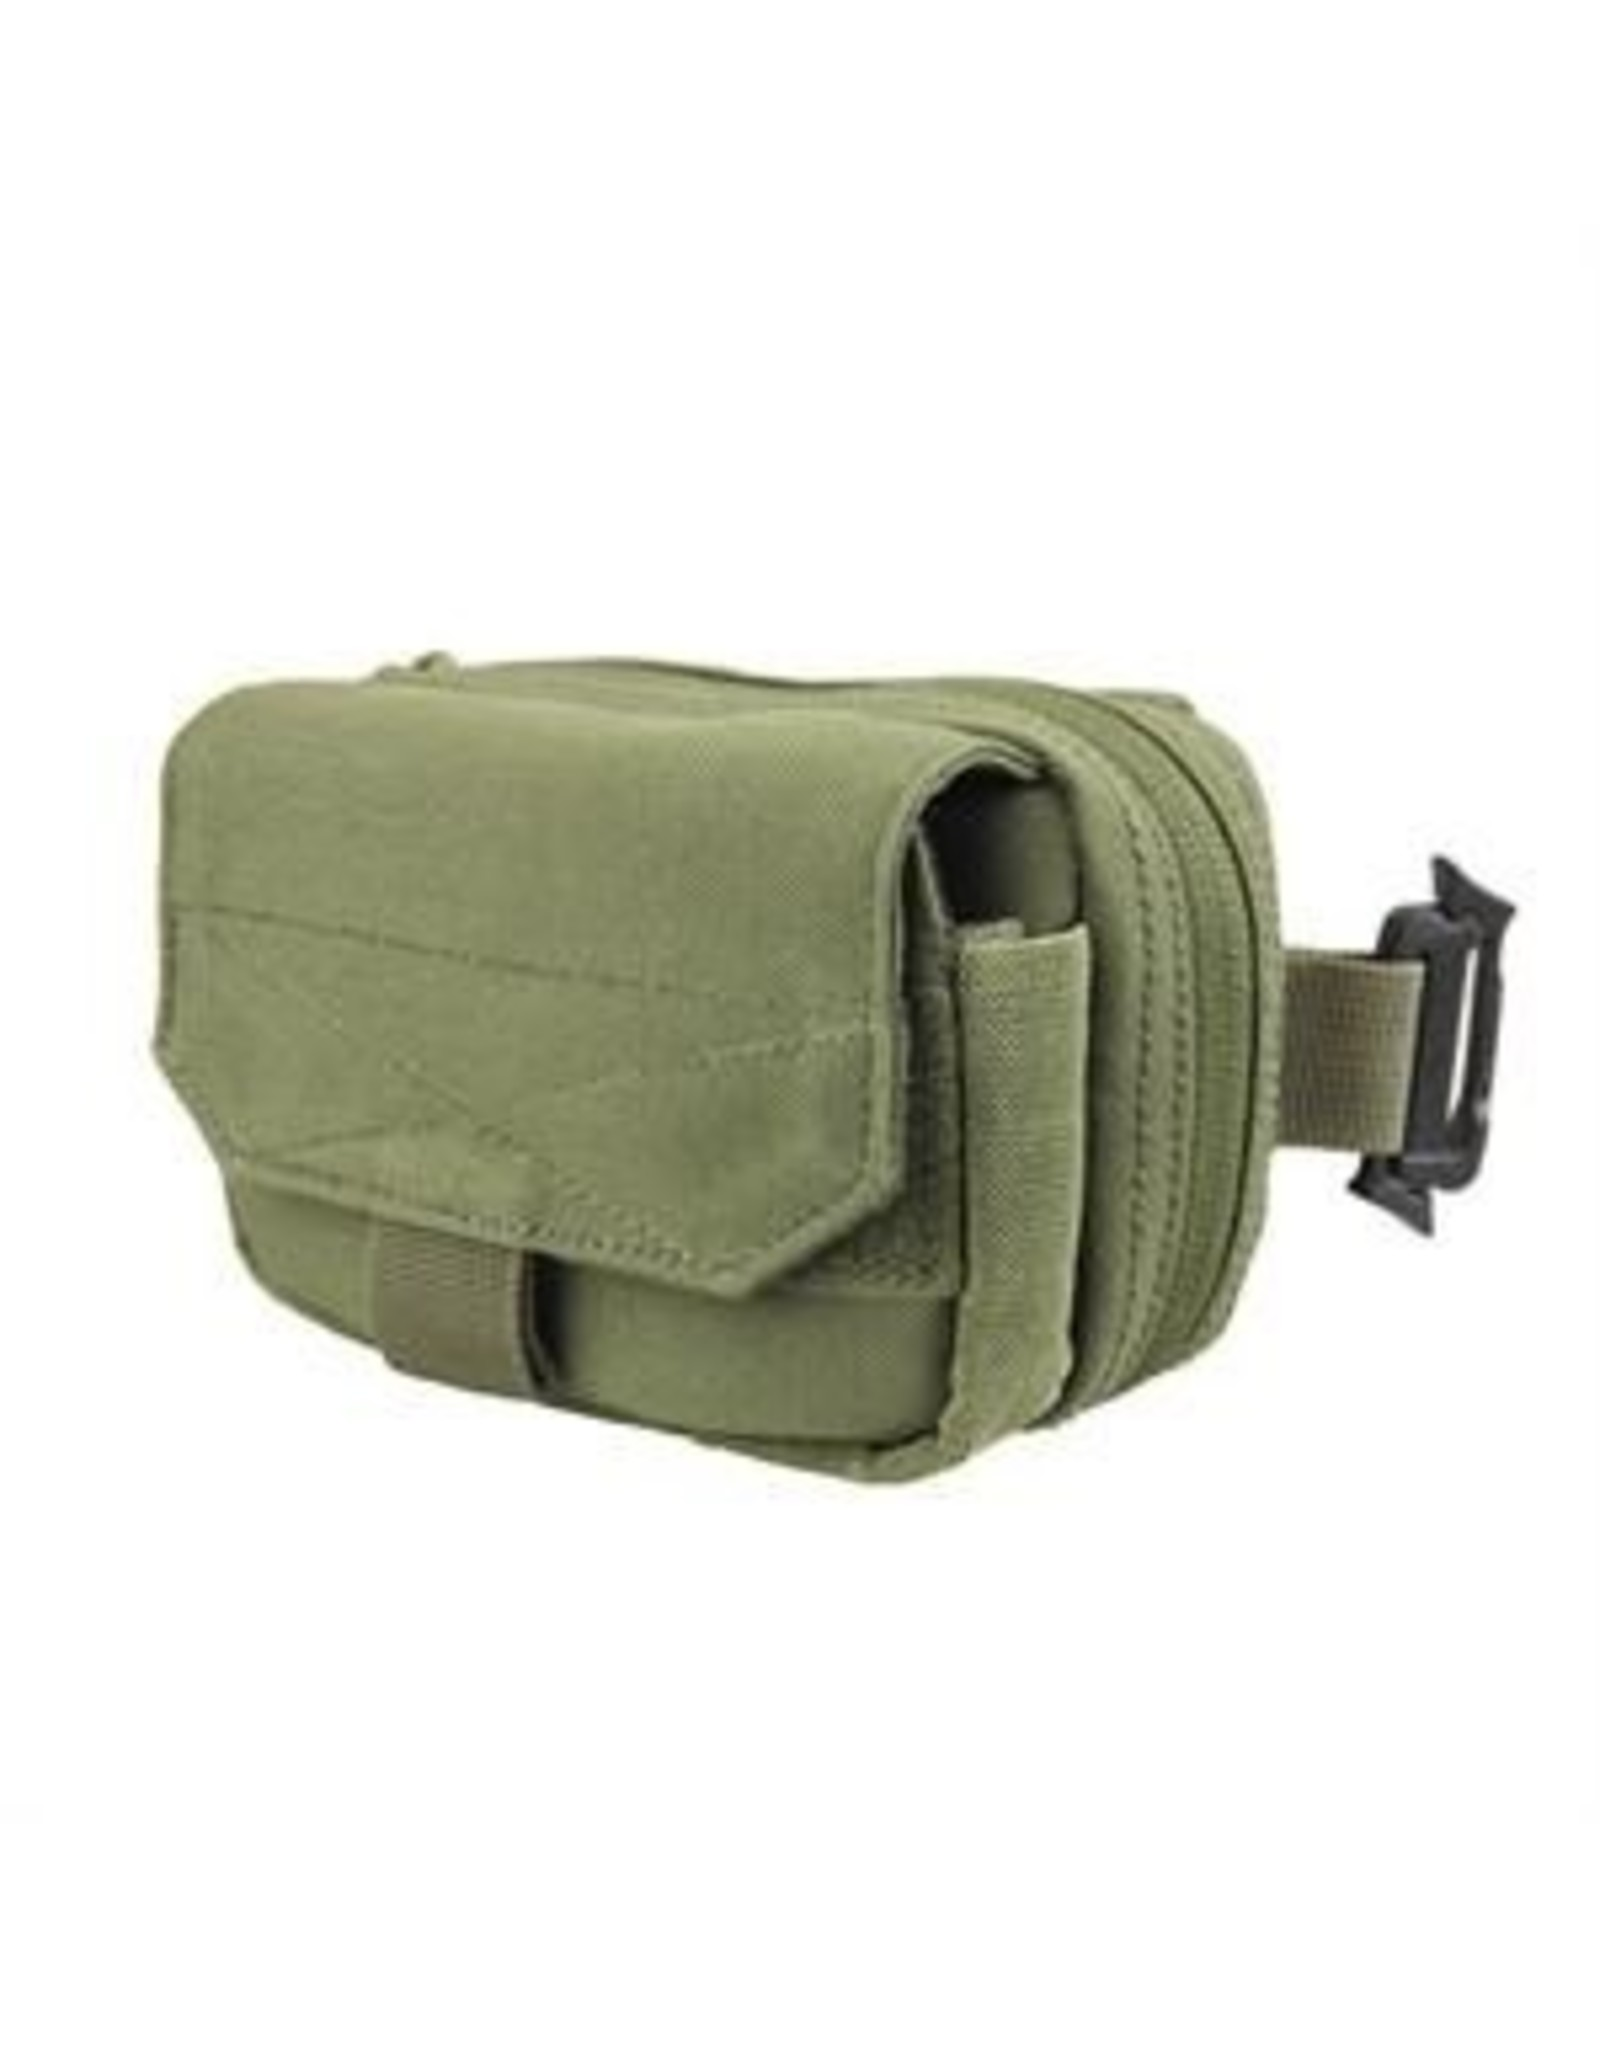 CONDOR TACTICAL MA66 DIGITAL POUCH